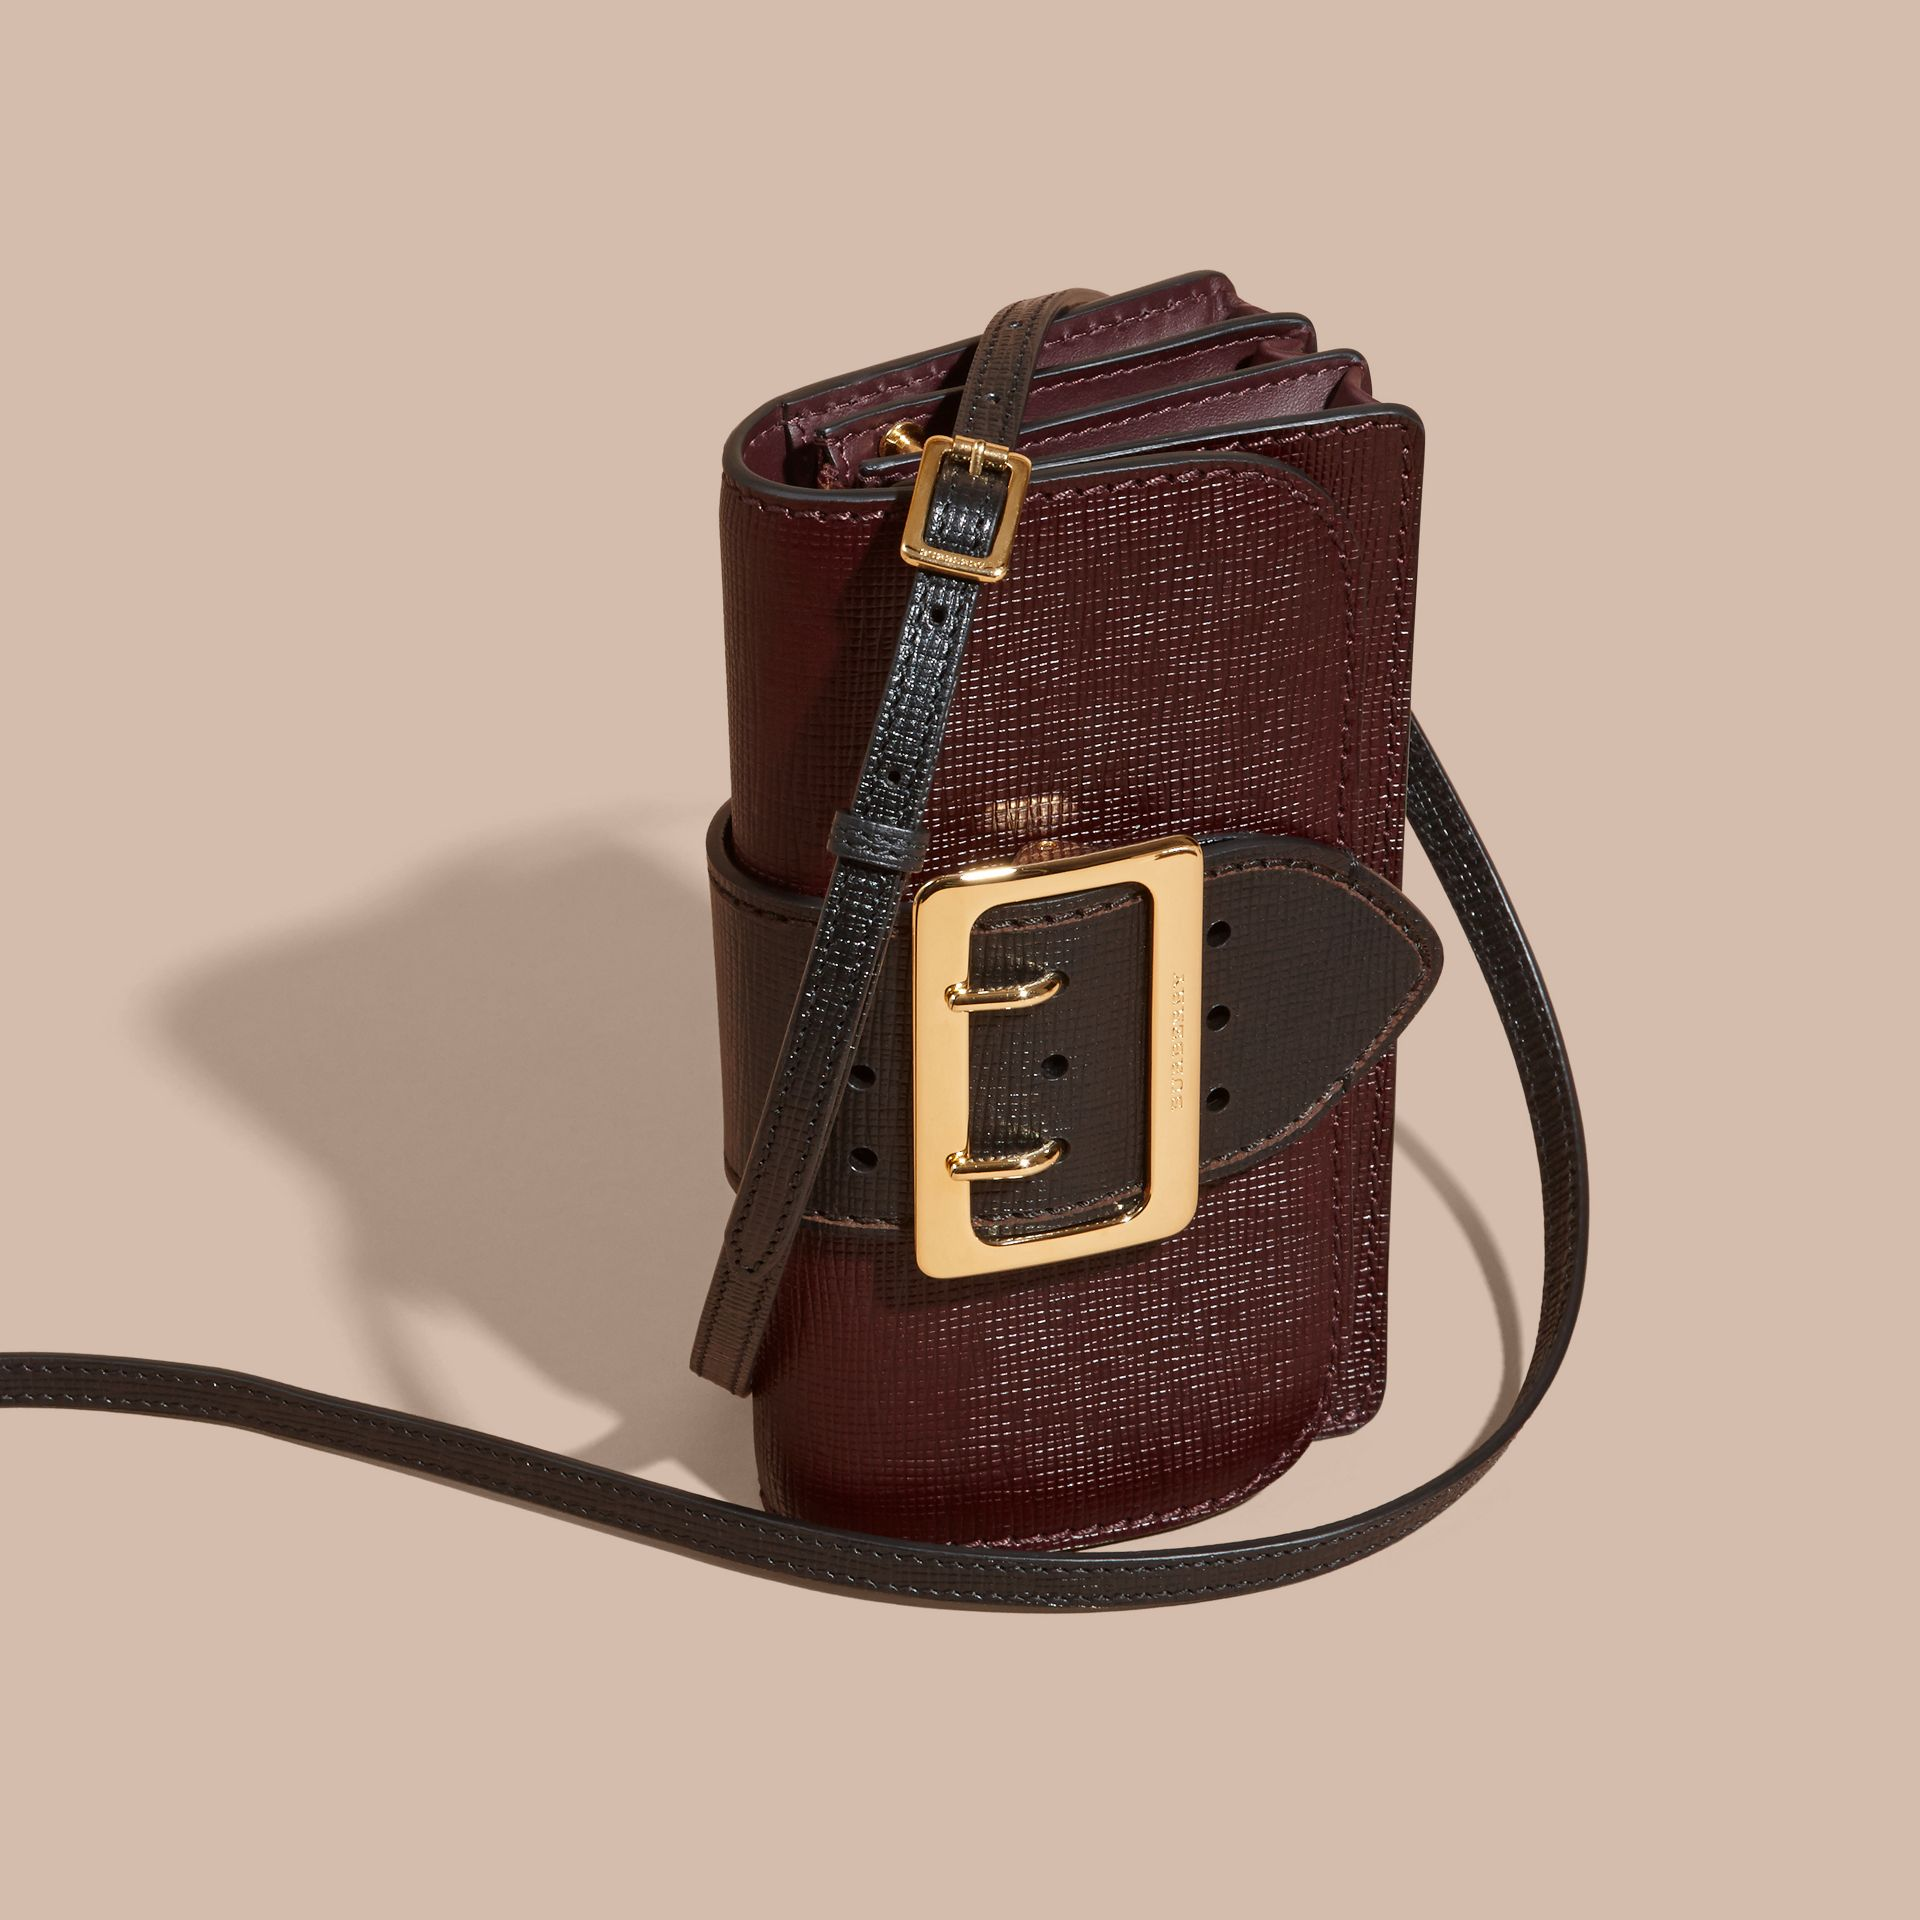 The Small Buckle Bag in Textured Leather in Burgundy/black - gallery image 8